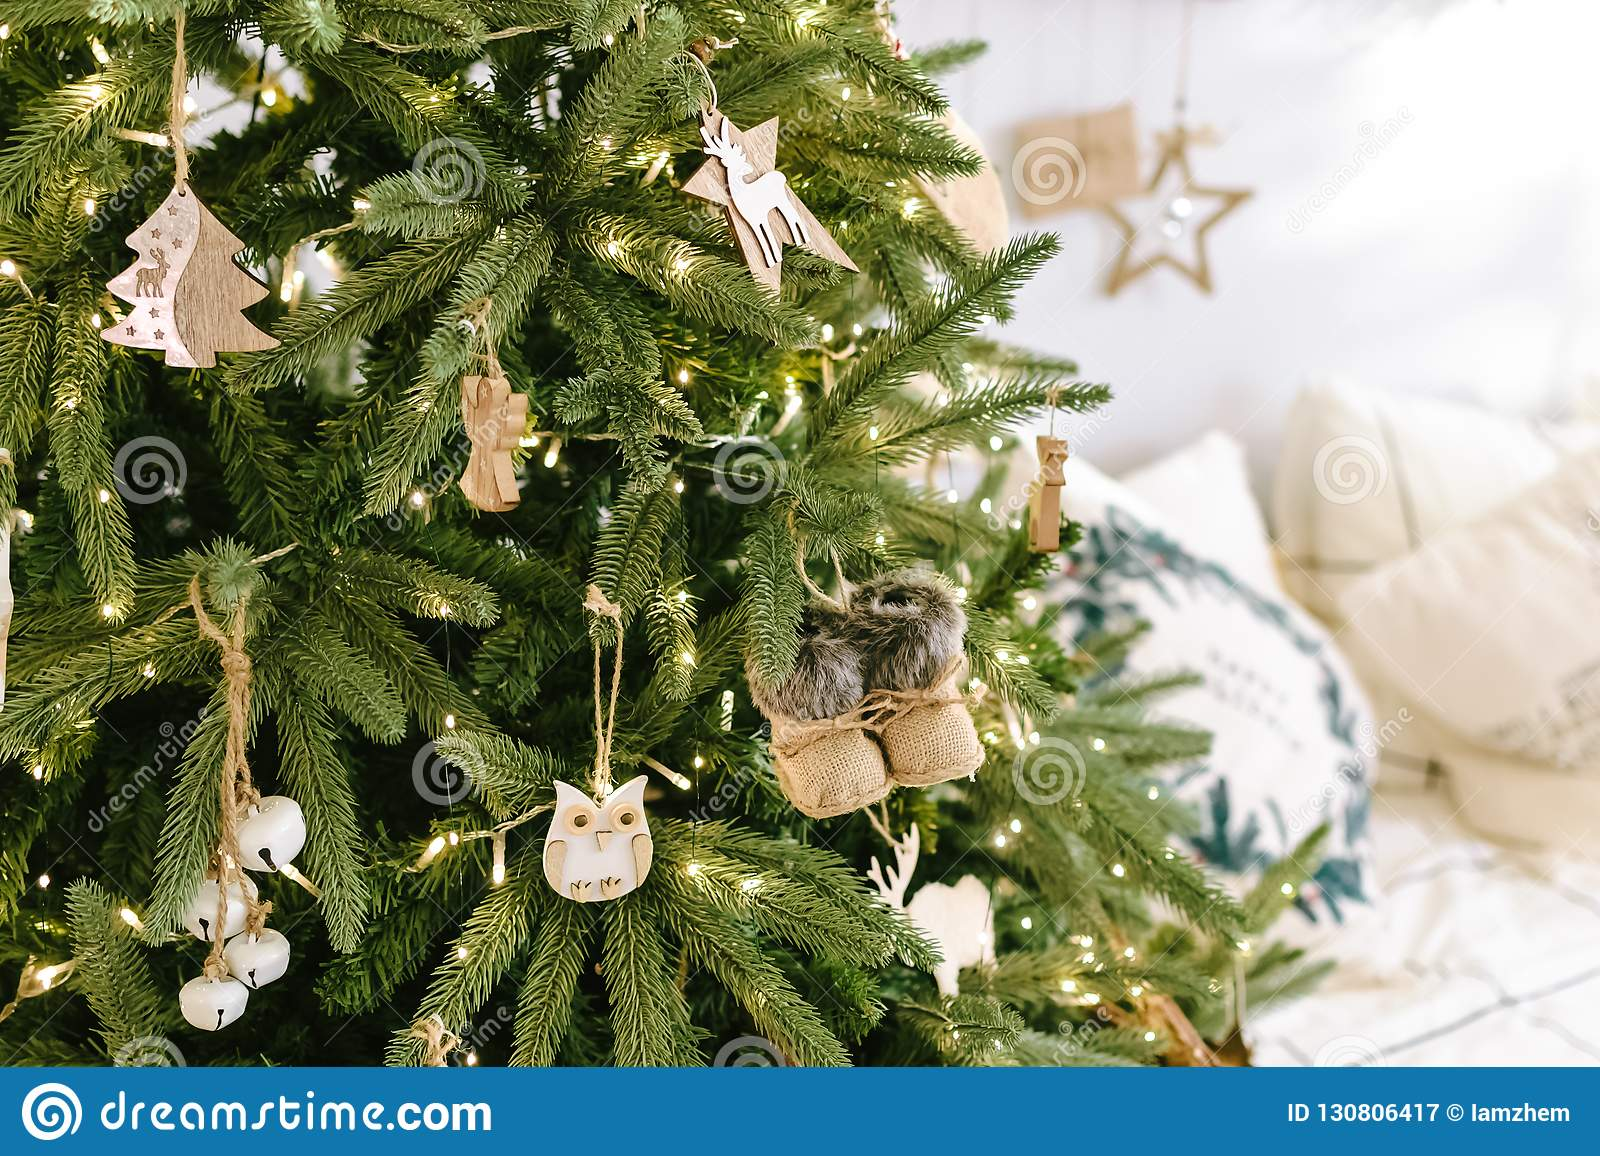 Christmas Tree Styles 2019 Christmas Tree Decorated With Wooden Vintage Toys Garland In A